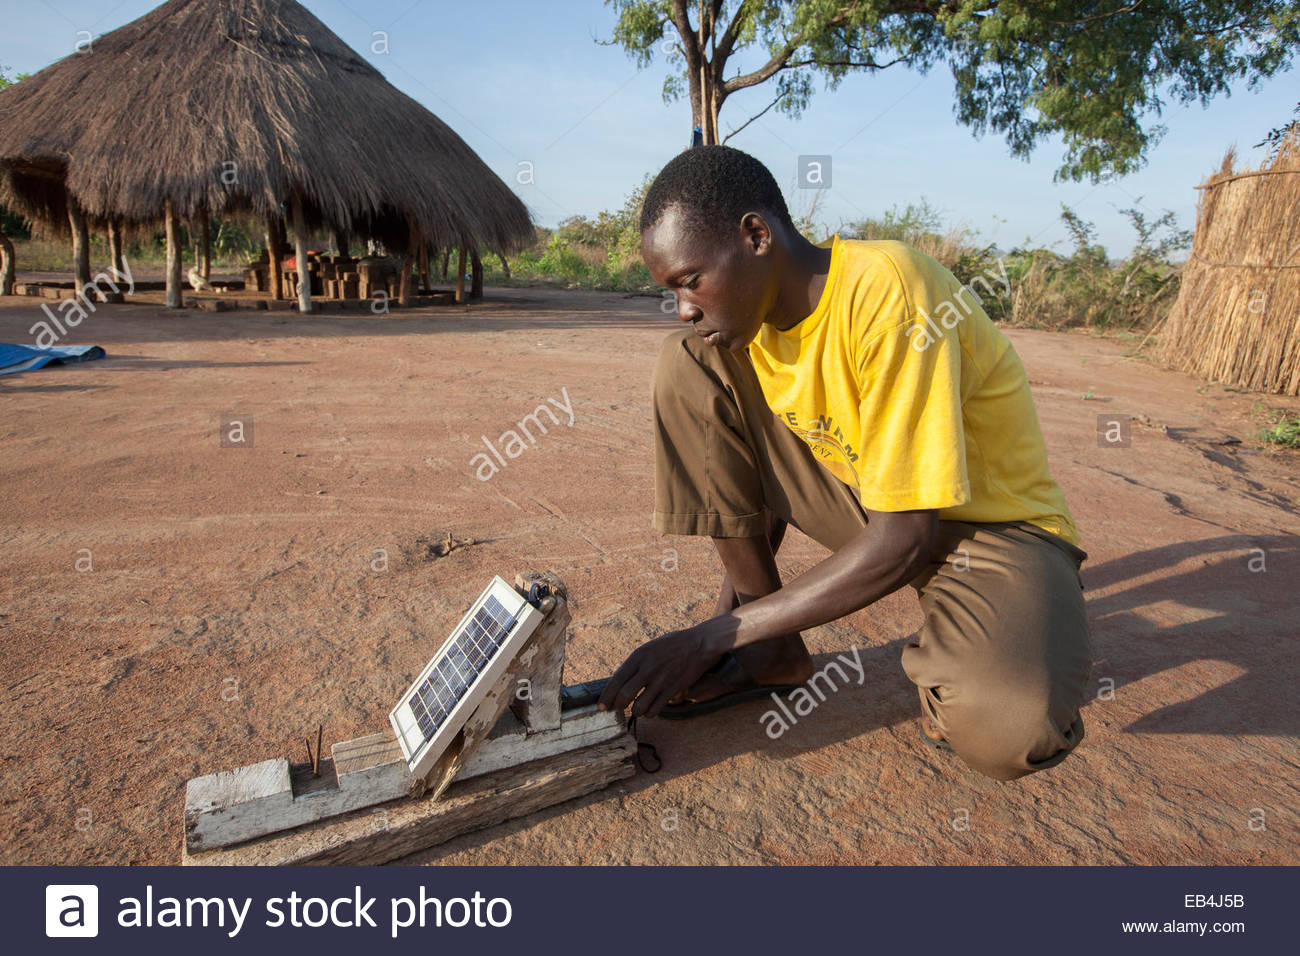 A young man uses a solar charger to power his mobile device. Stock Photo